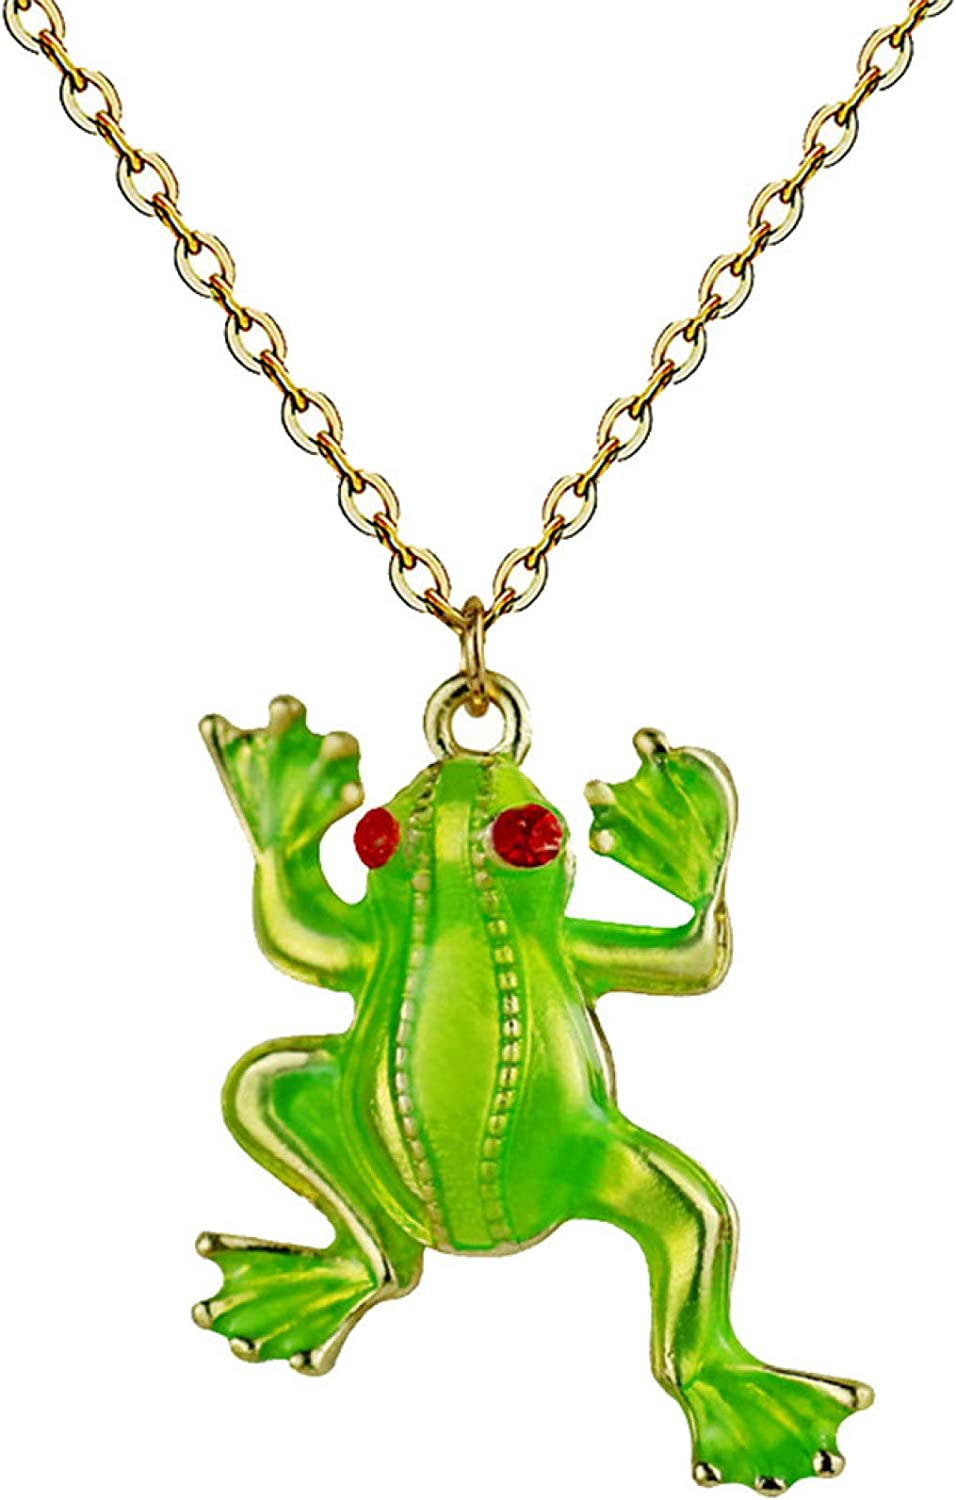 Cartoon Frog Pendant Dangle Enamel Clavicle Chain Necklace Jewelry Gift for Women Girls Teens